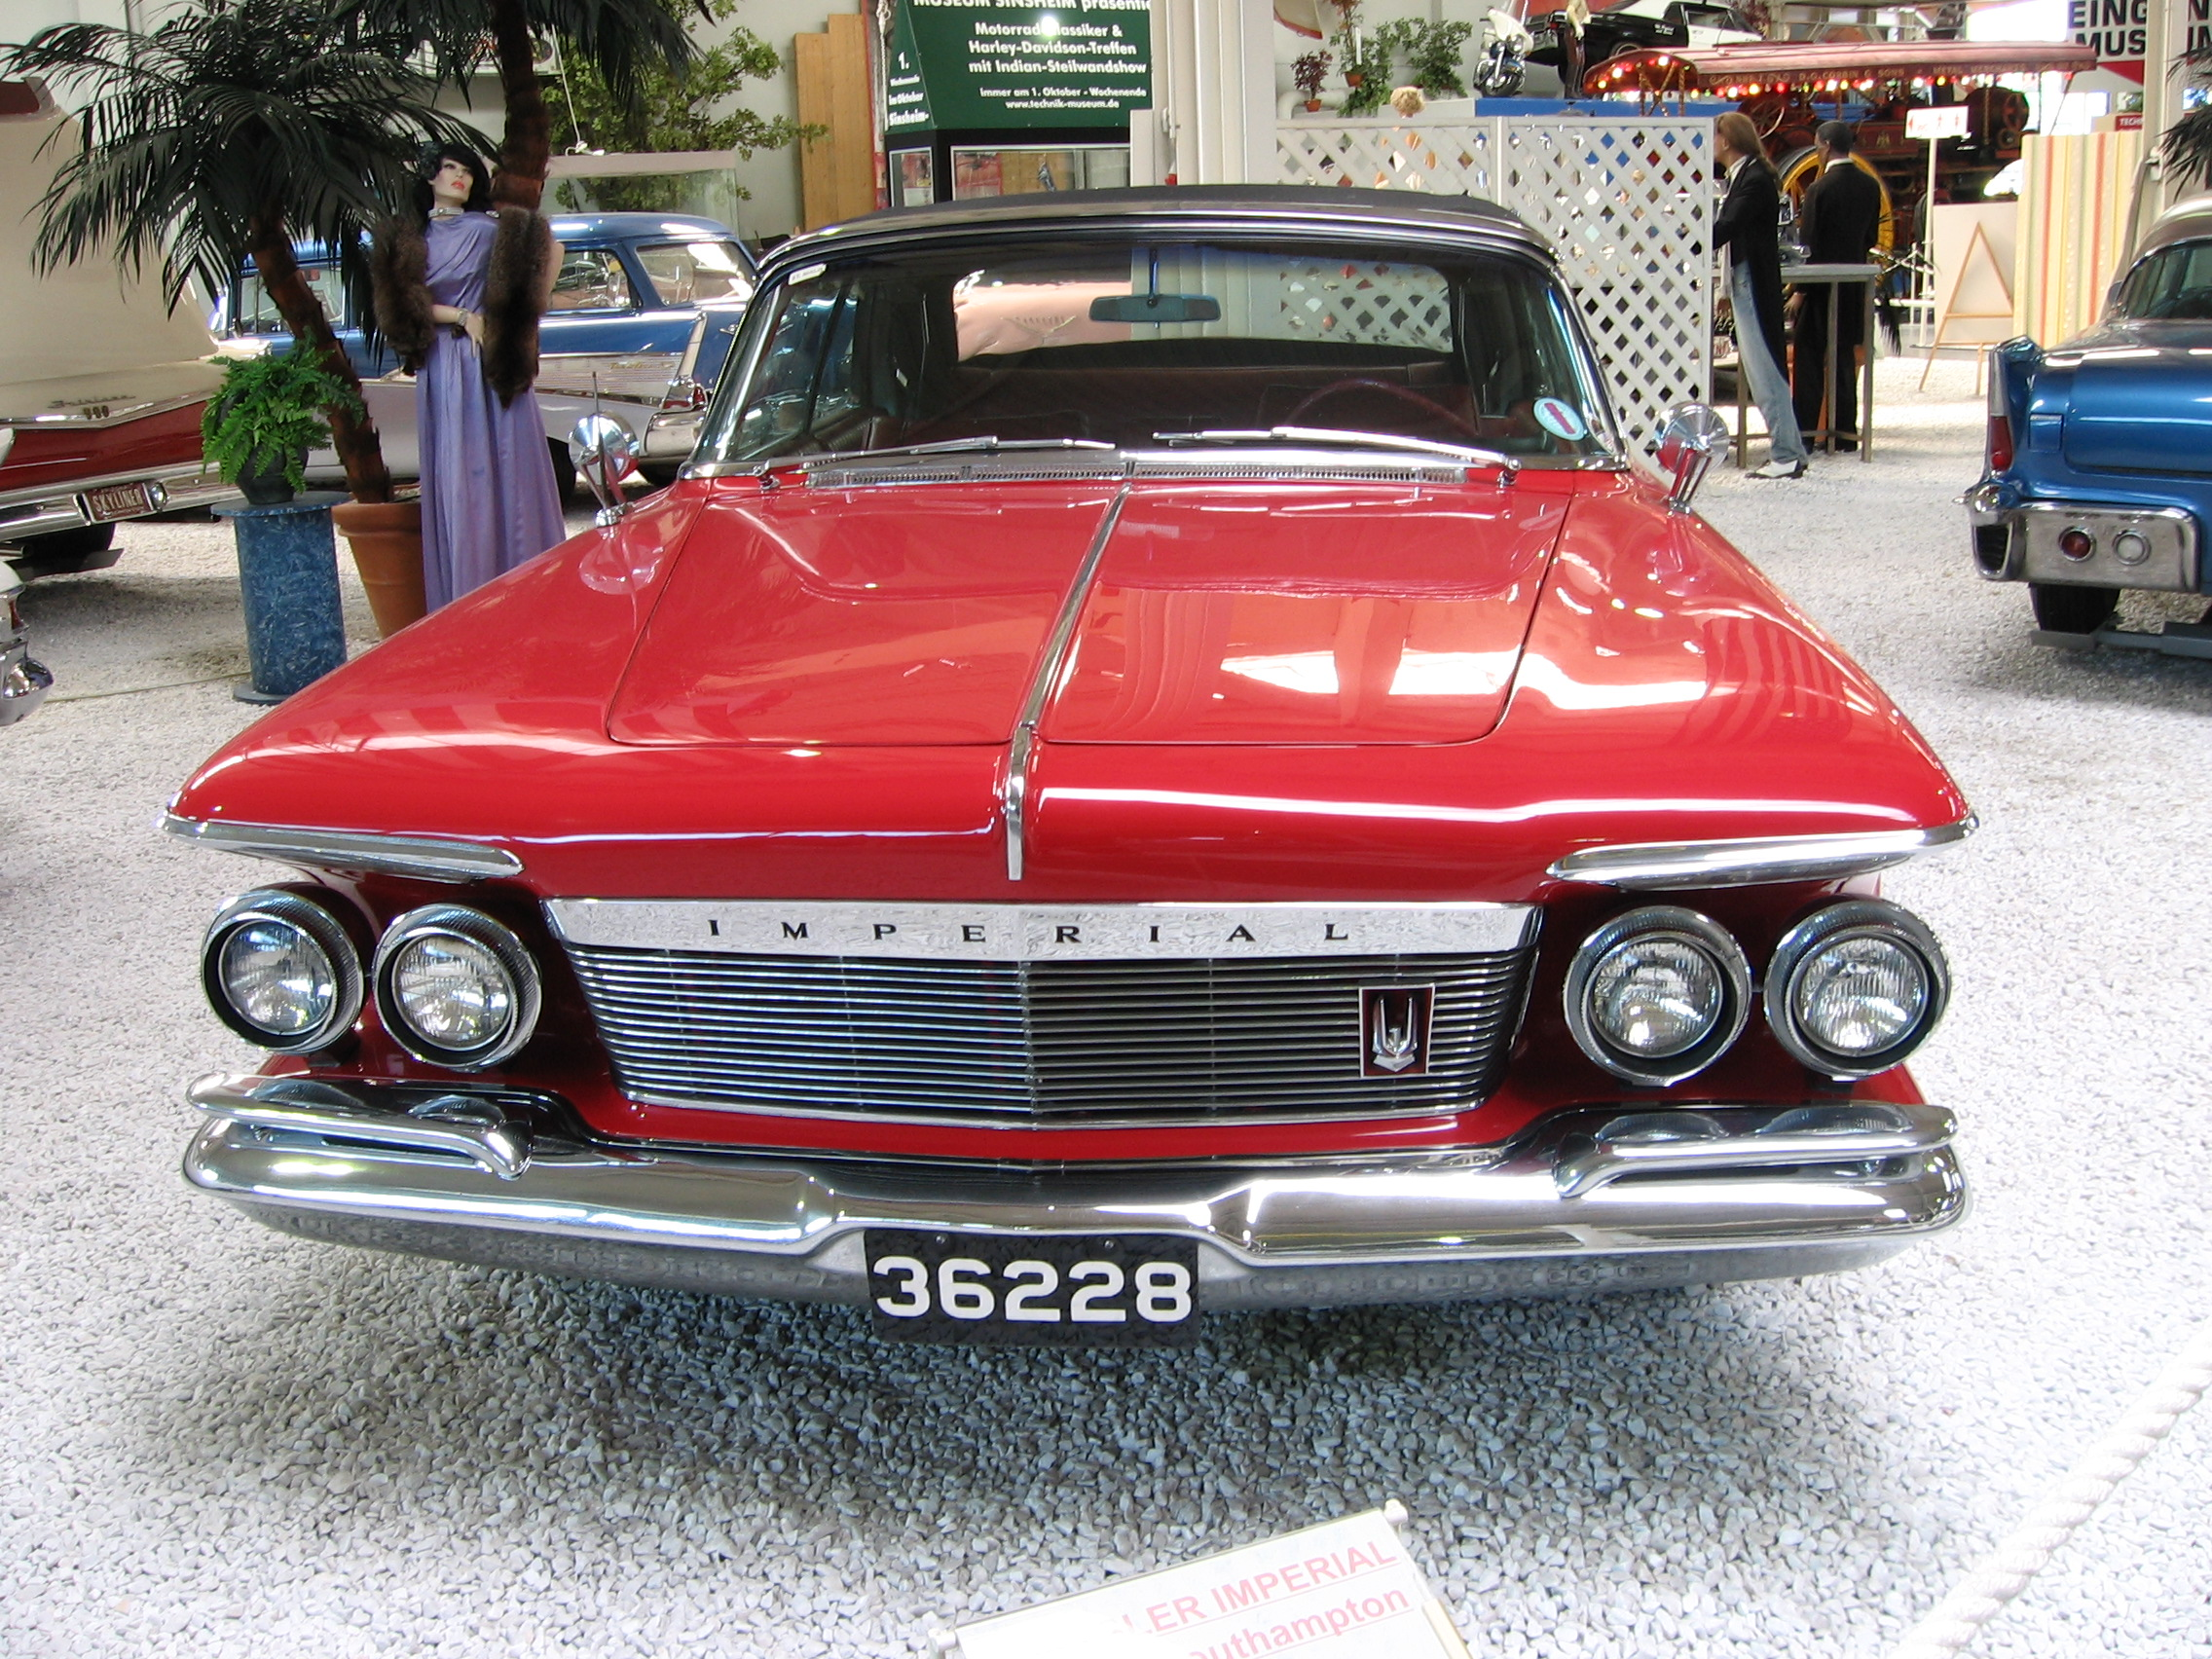 chrysler imperial 1960 file 1960 chrysler imperial. Cars Review. Best American Auto & Cars Review